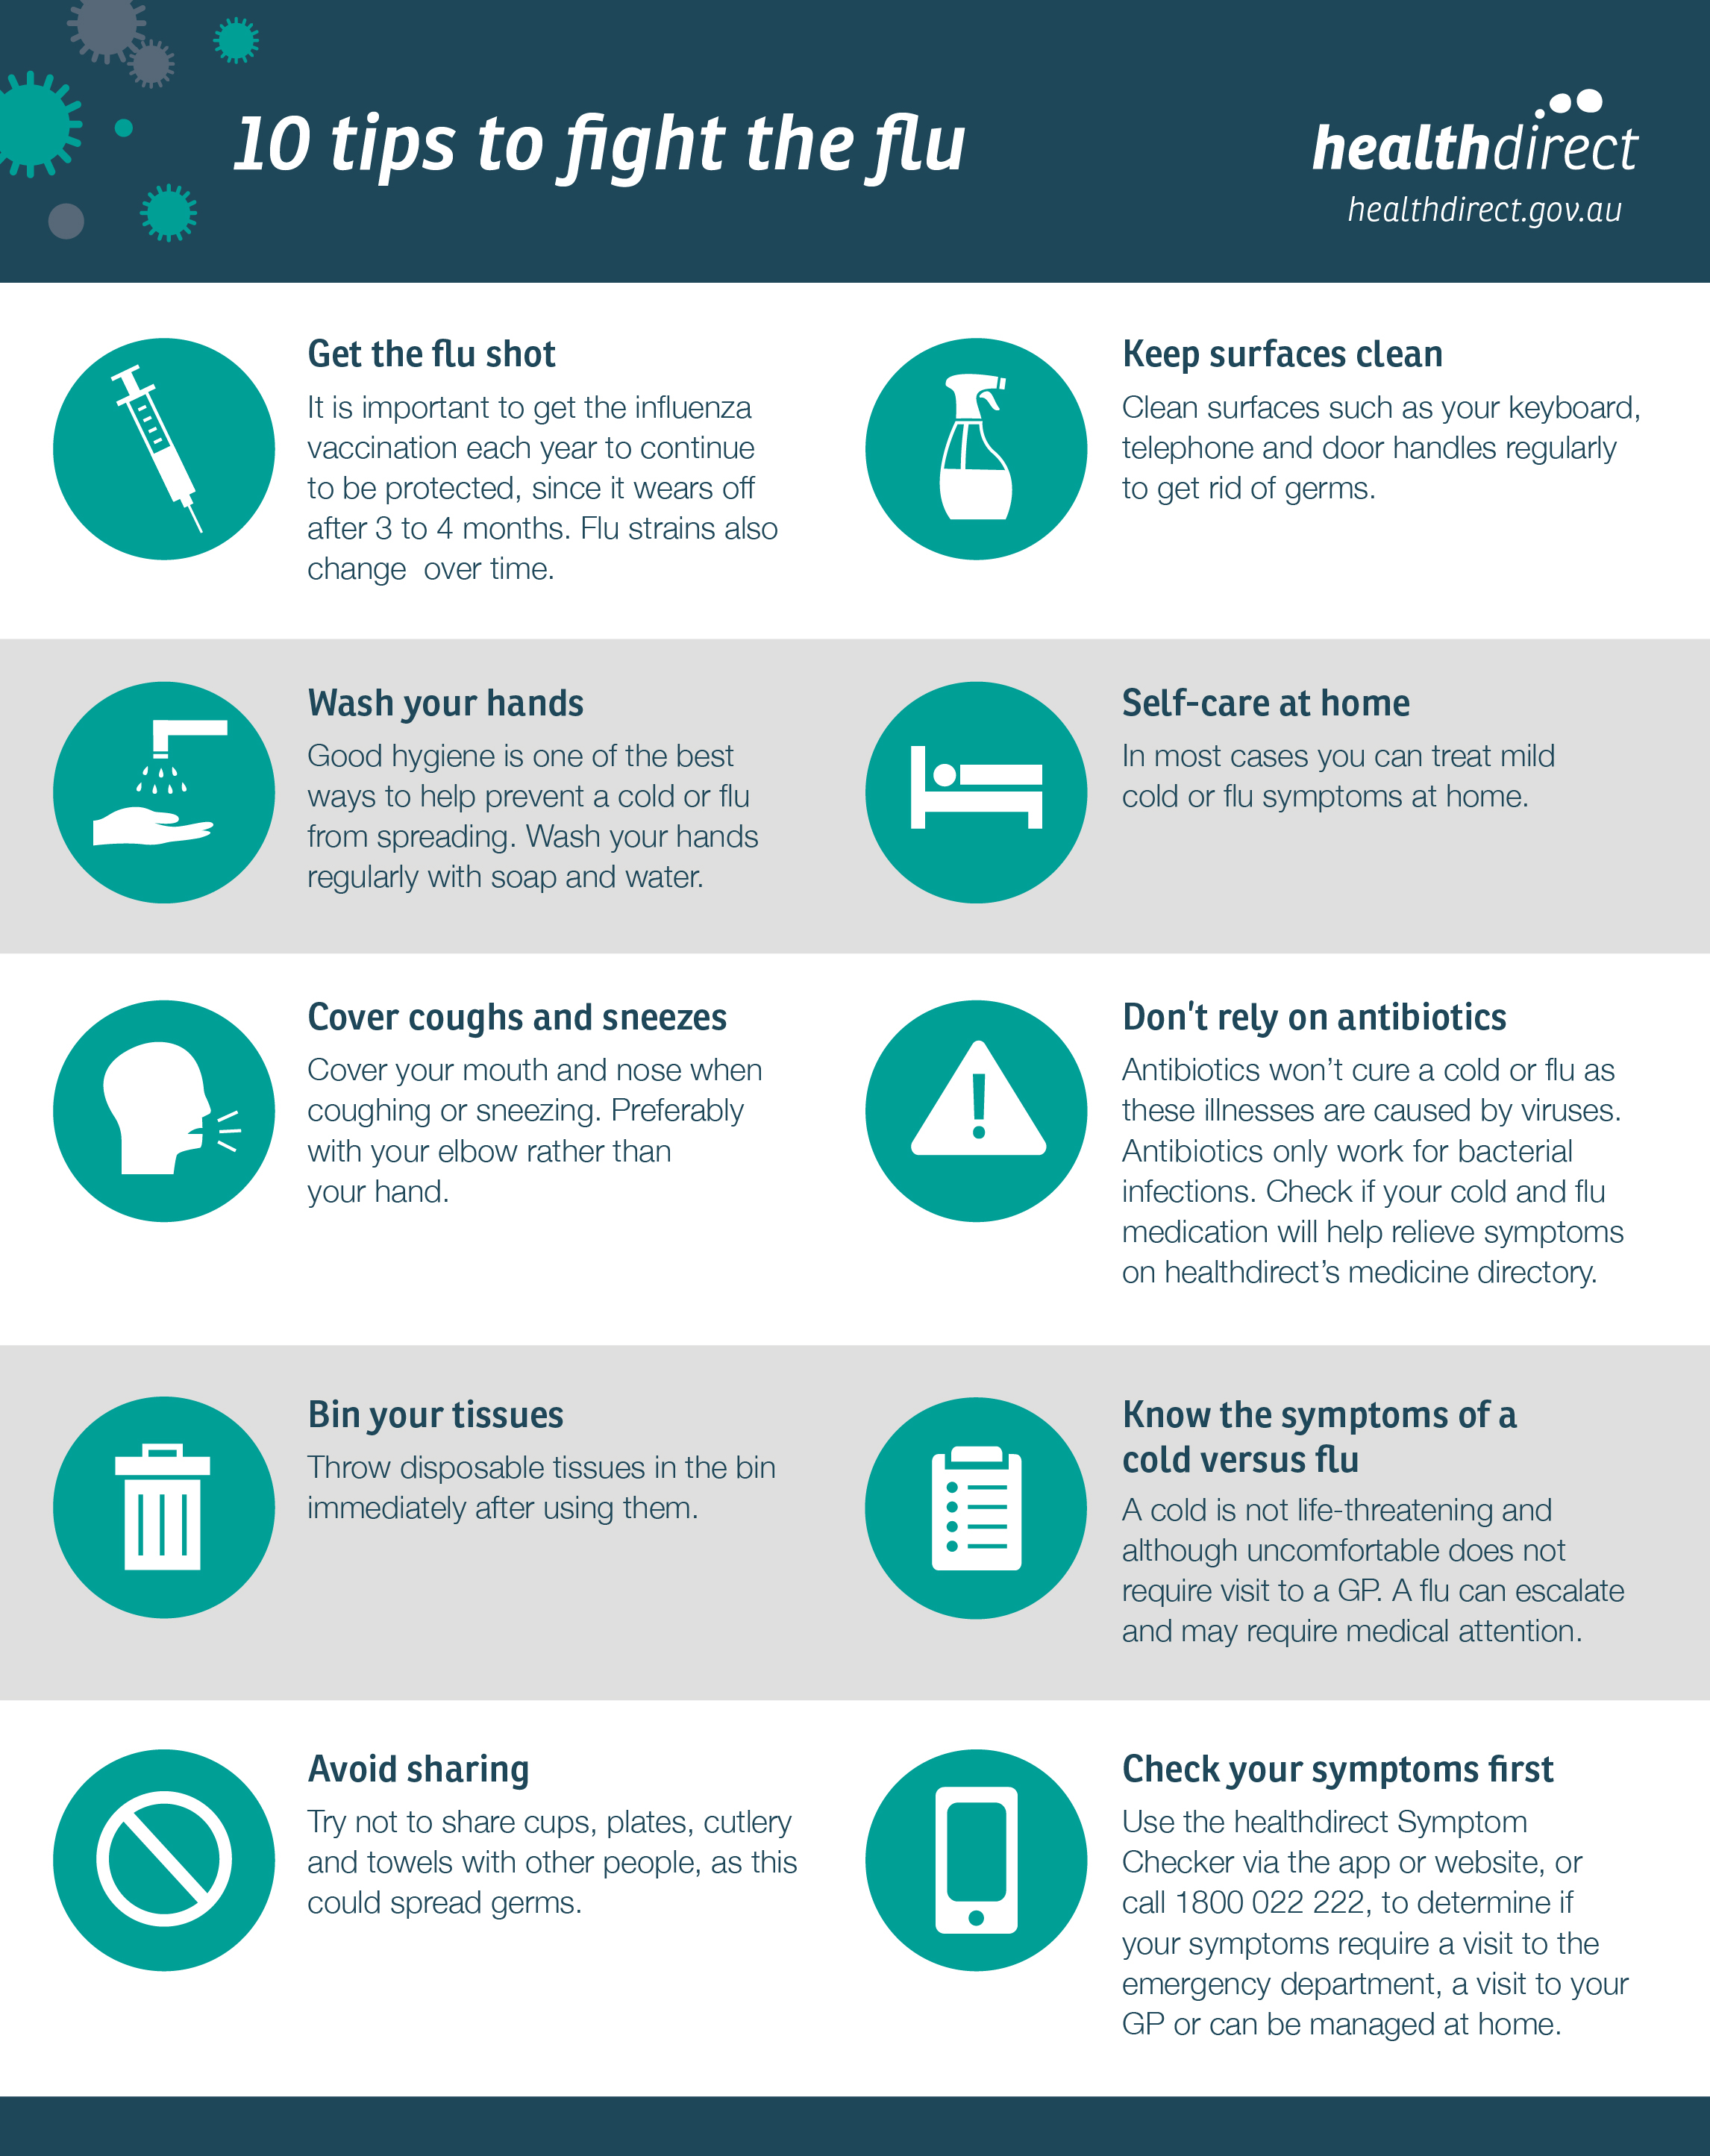 10 tips to fight the flu infographic